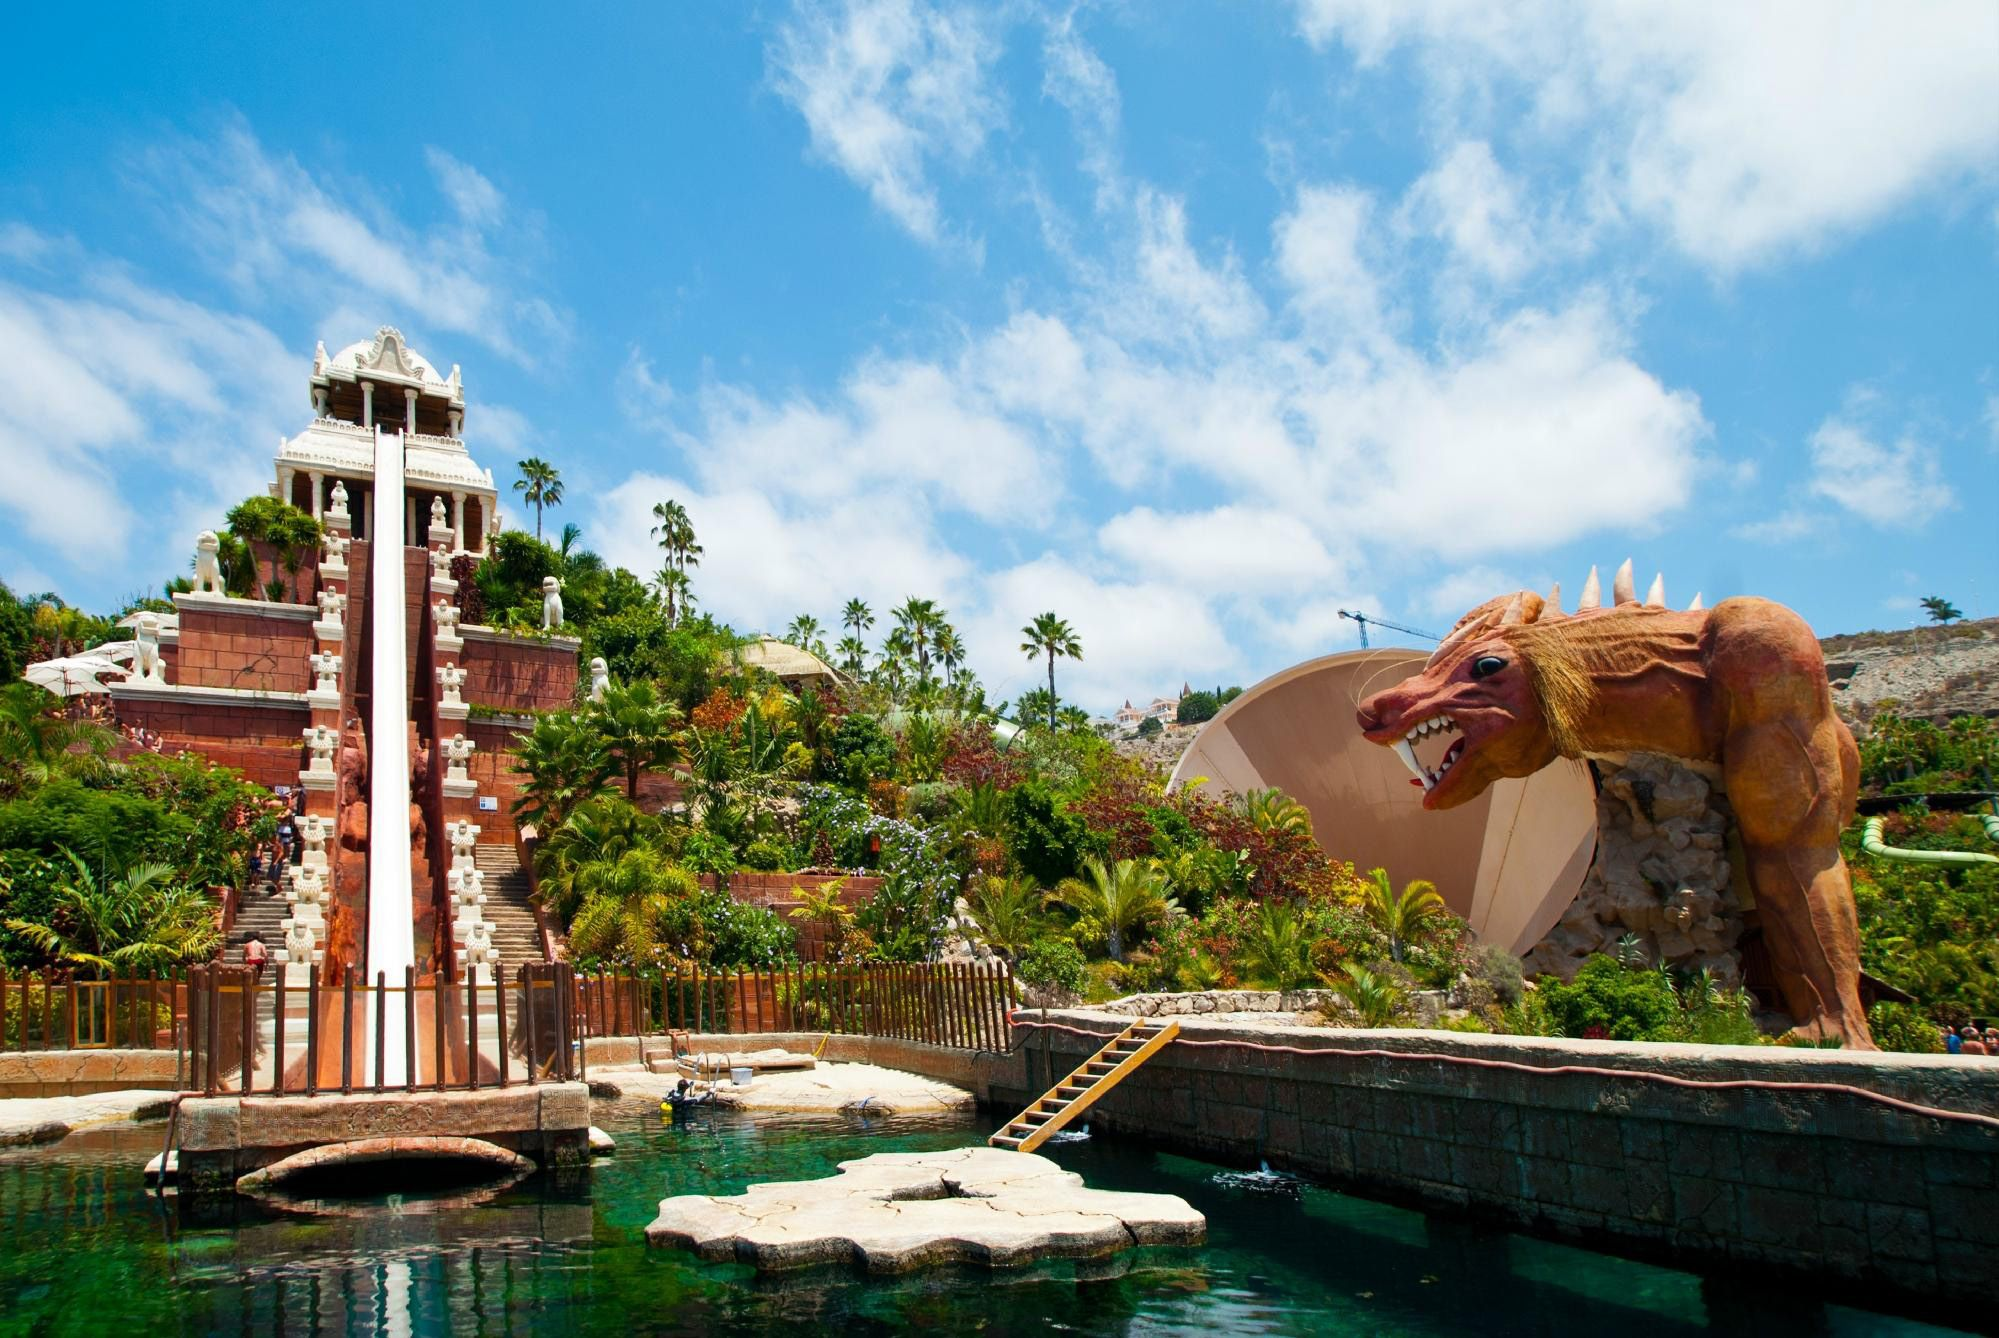 Siam Park In Adeje Spain Is The Top Water Park In The World According To The Tripadvisor Travelers Choice Amu Water Park Rides Water Park Siam Park Tenerife